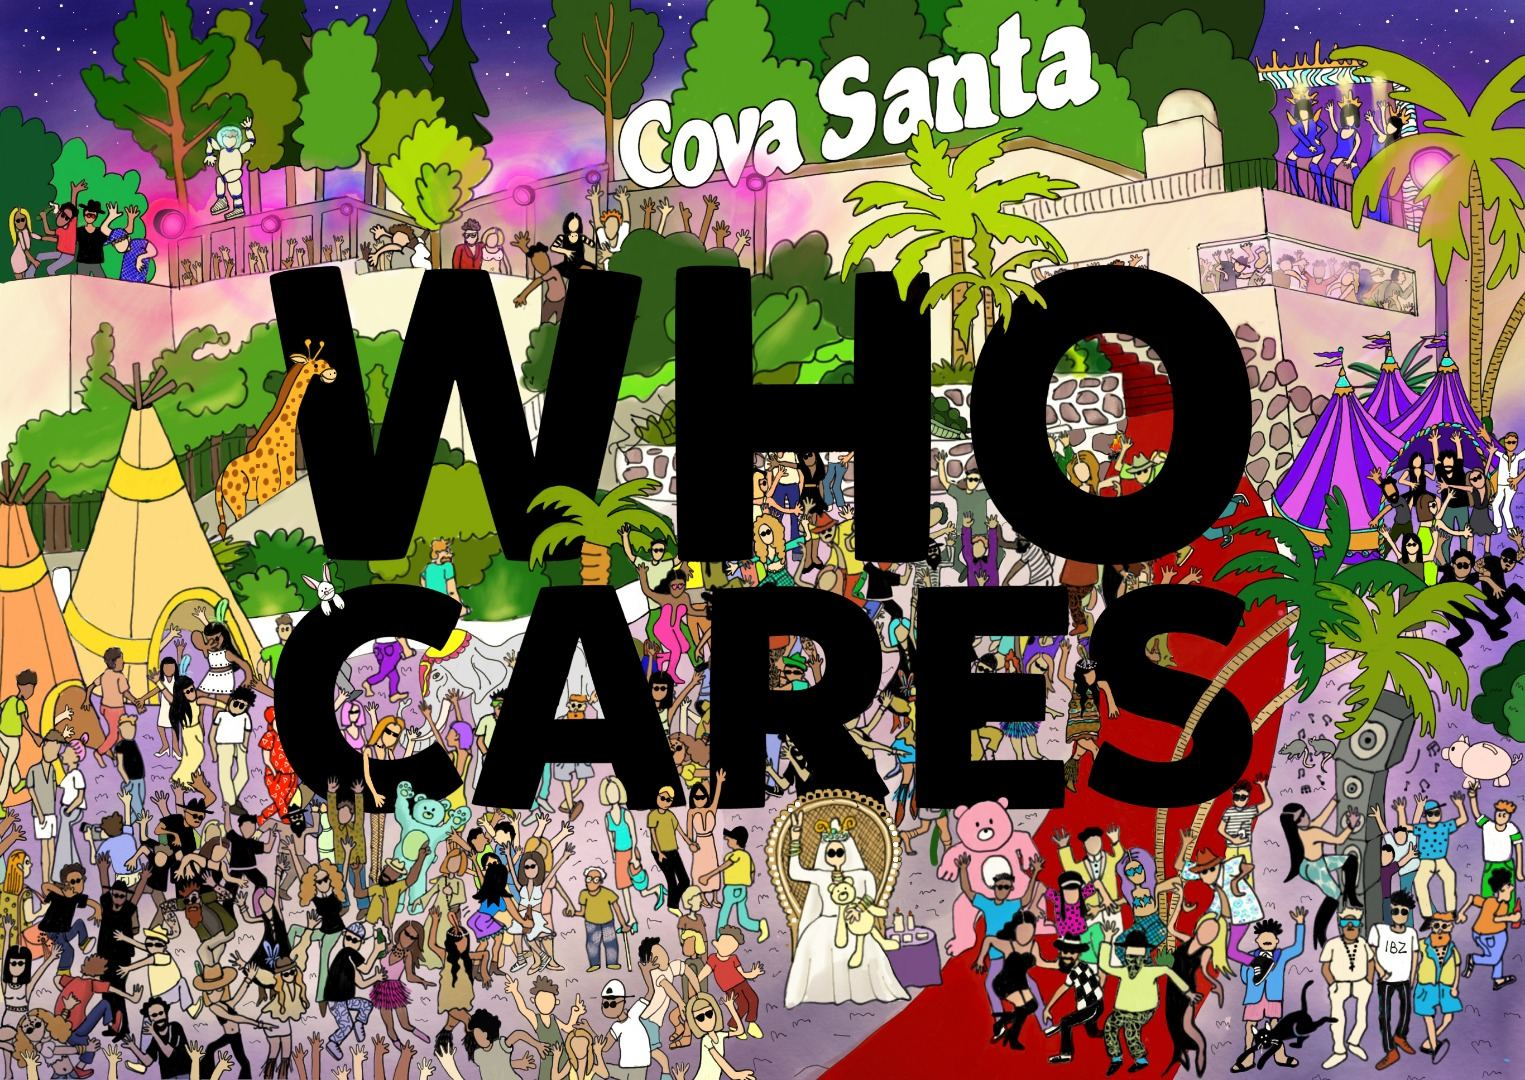 Who Cares Cova santa By cocoon 20